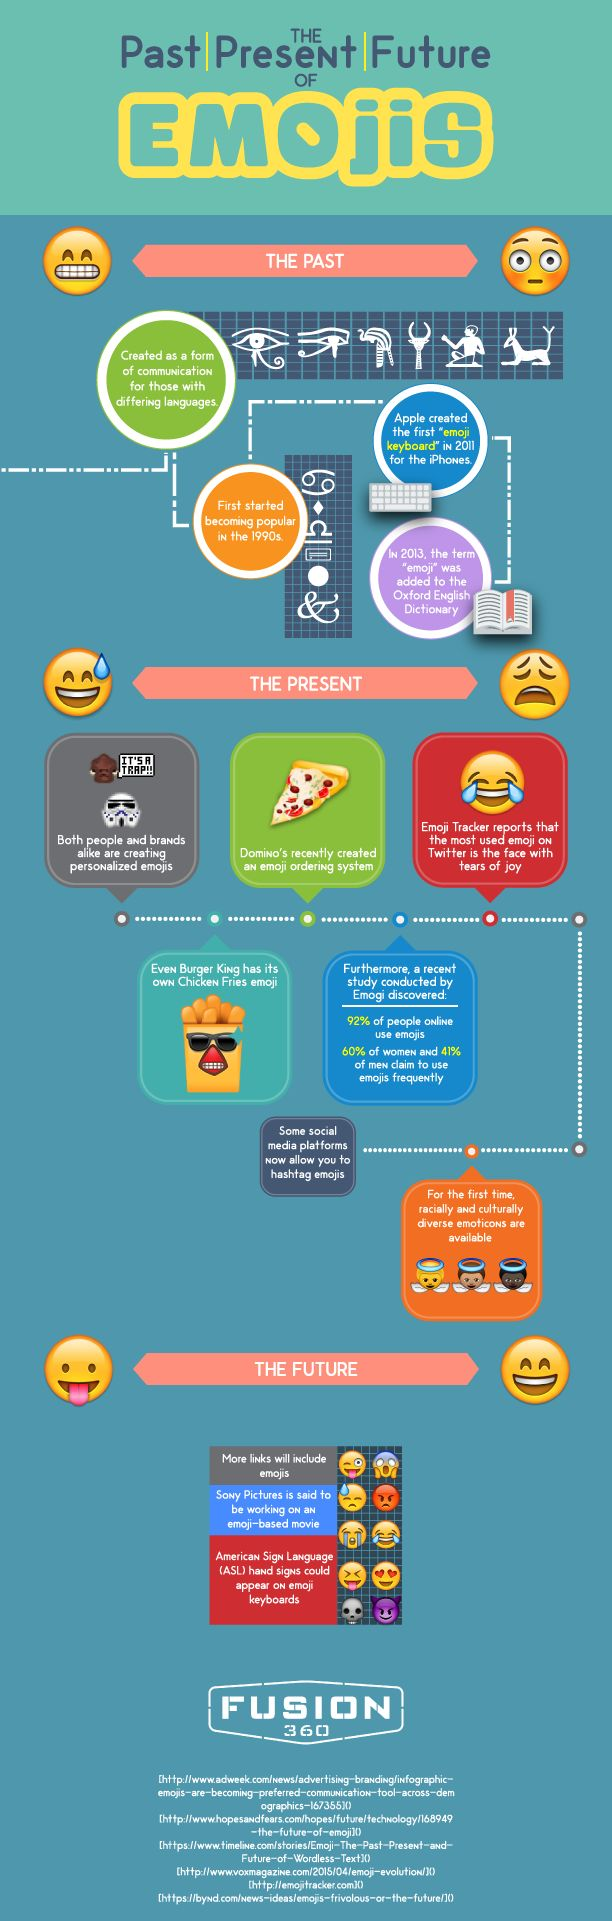 The Past Present and Future of Emojis